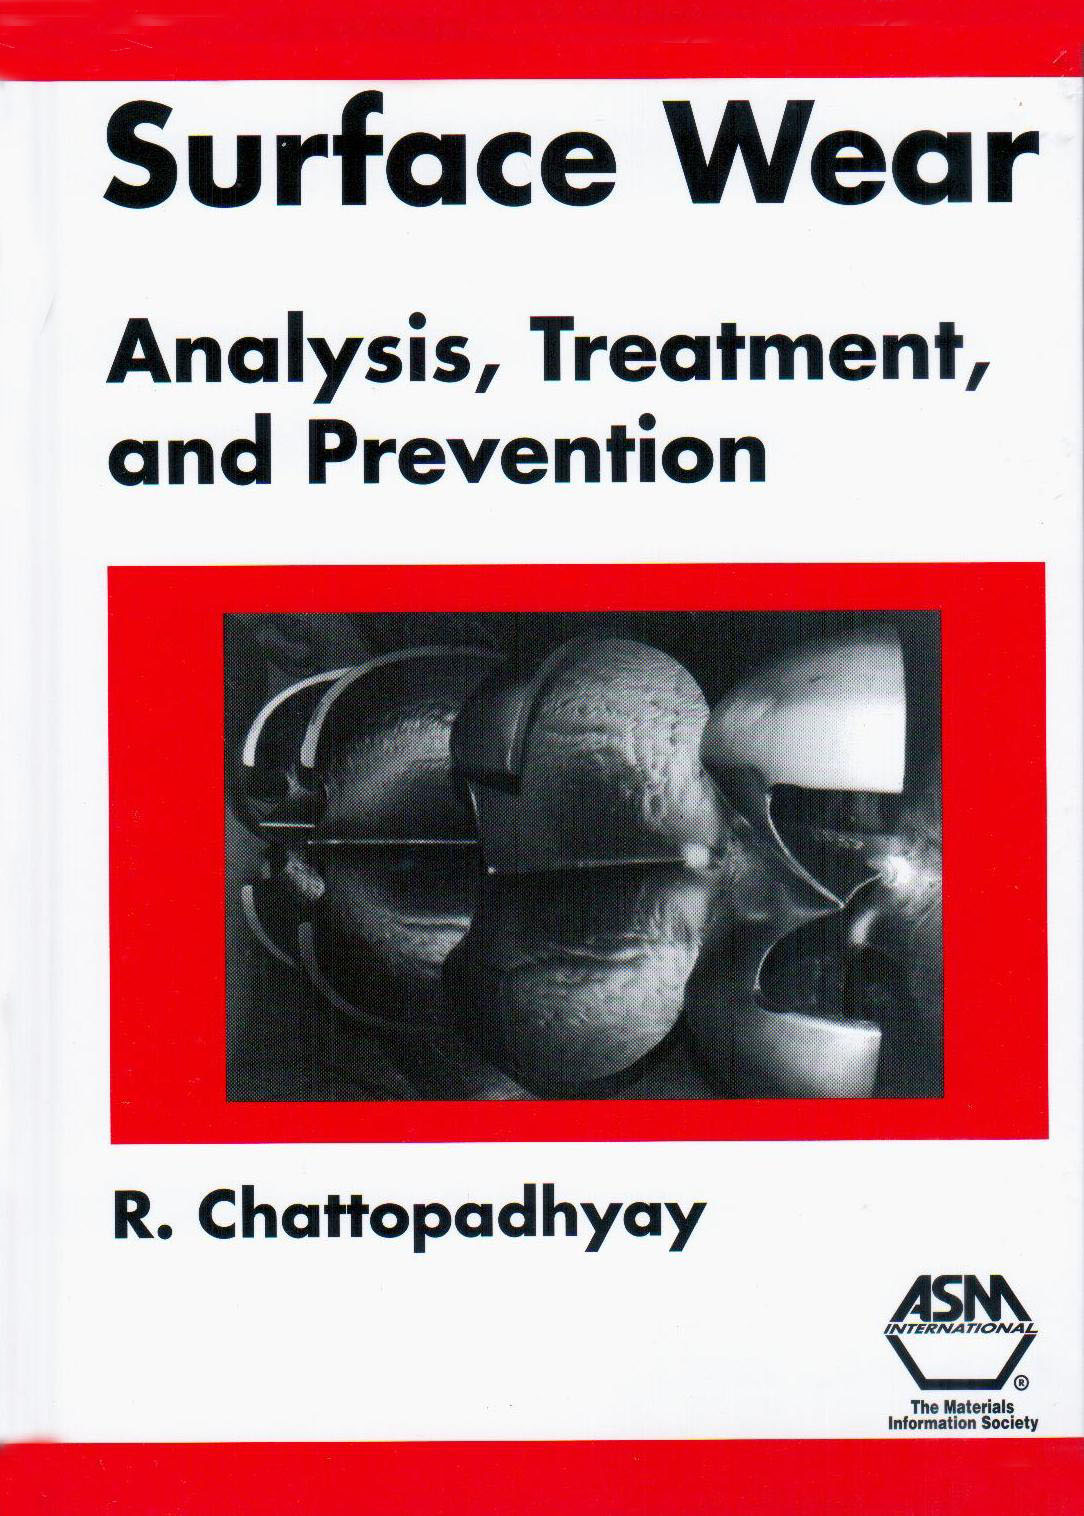 The analysis and the prevention of